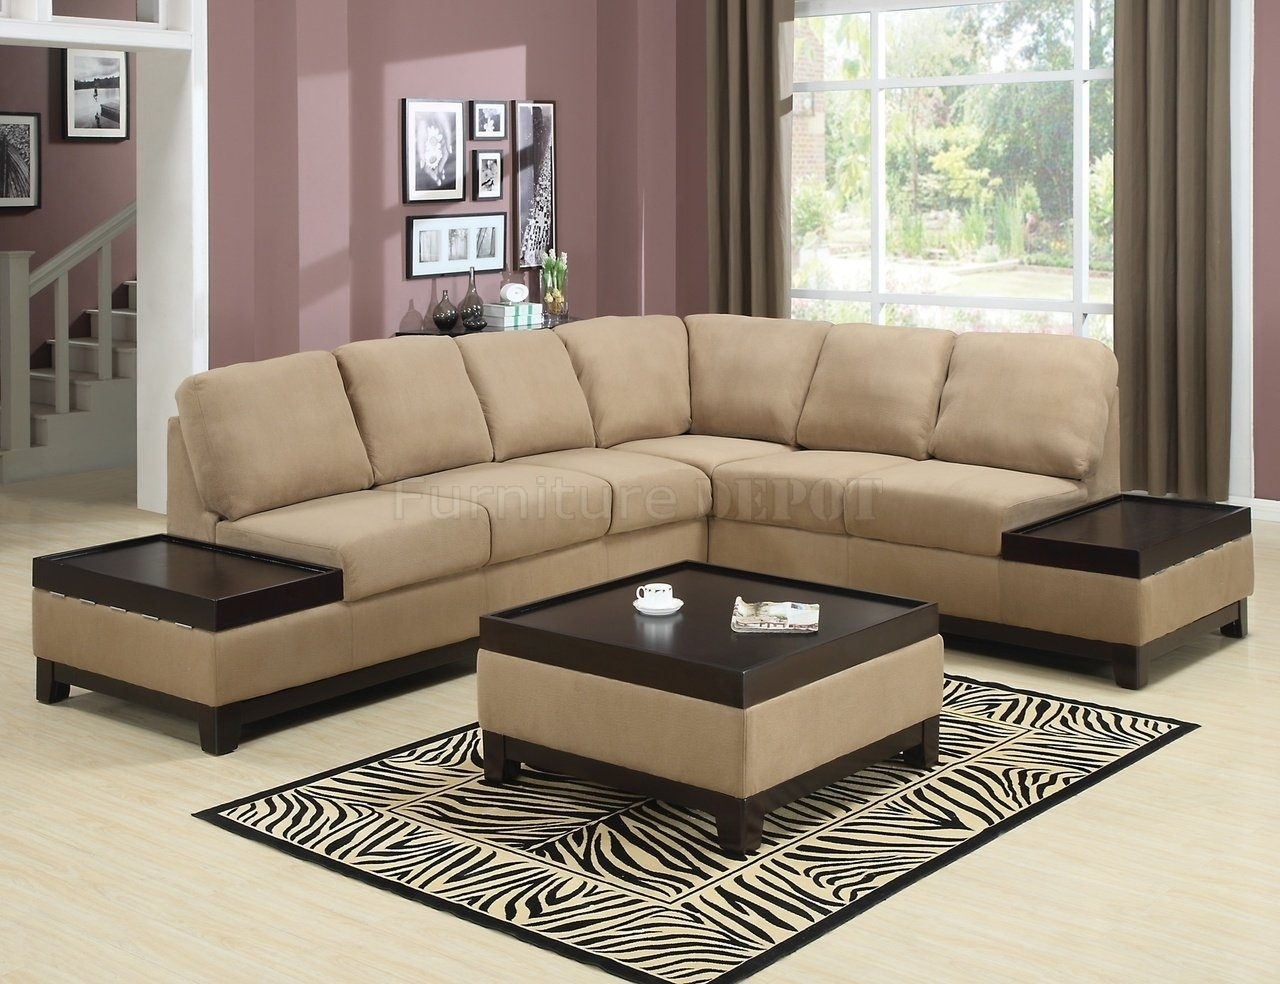 Featured Image of Tulsa Sectional Sofas